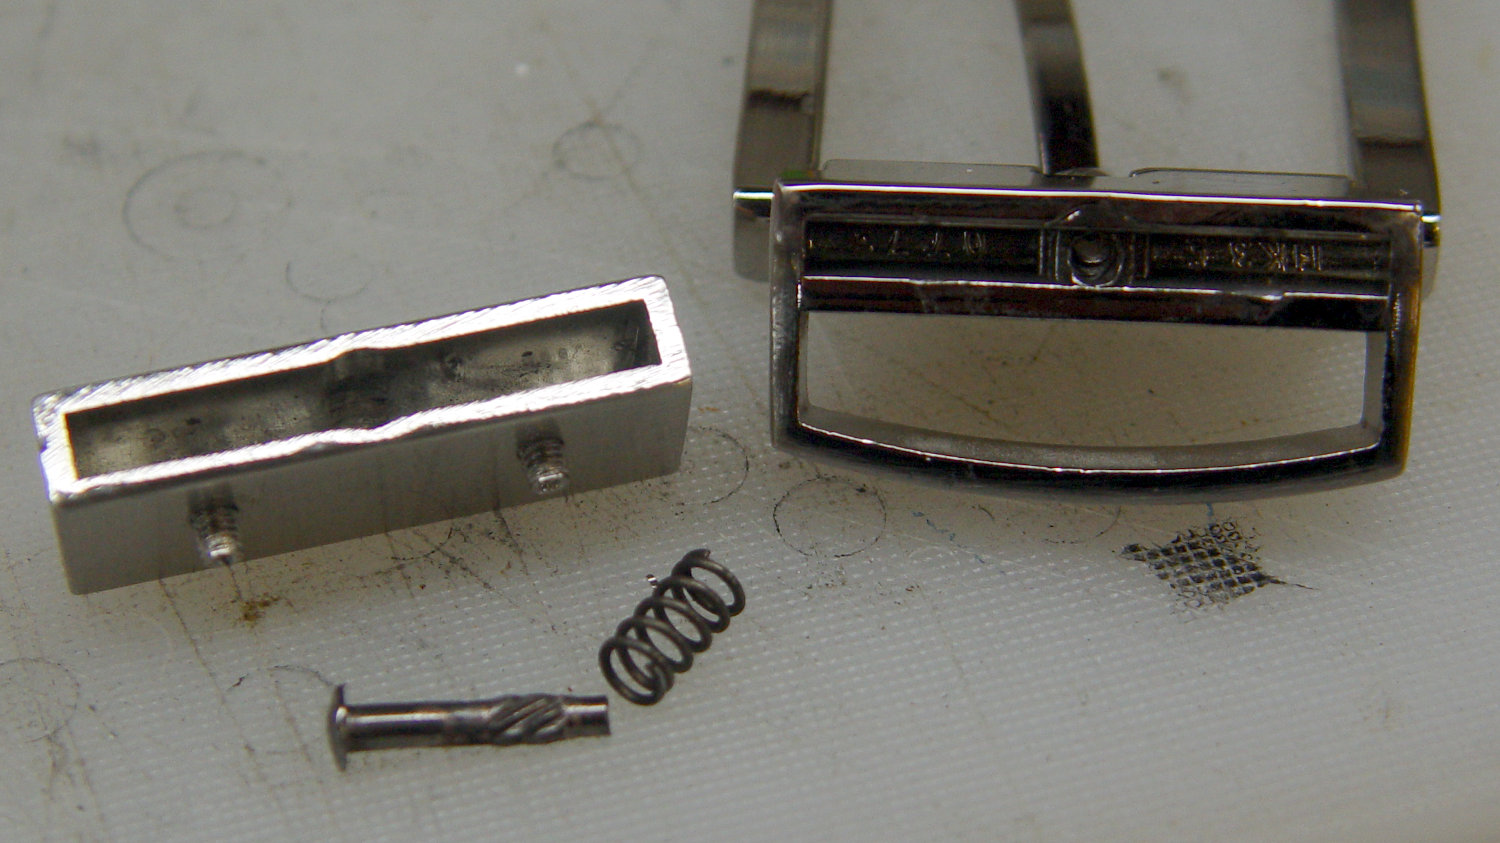 Reversible belt buckle - parts